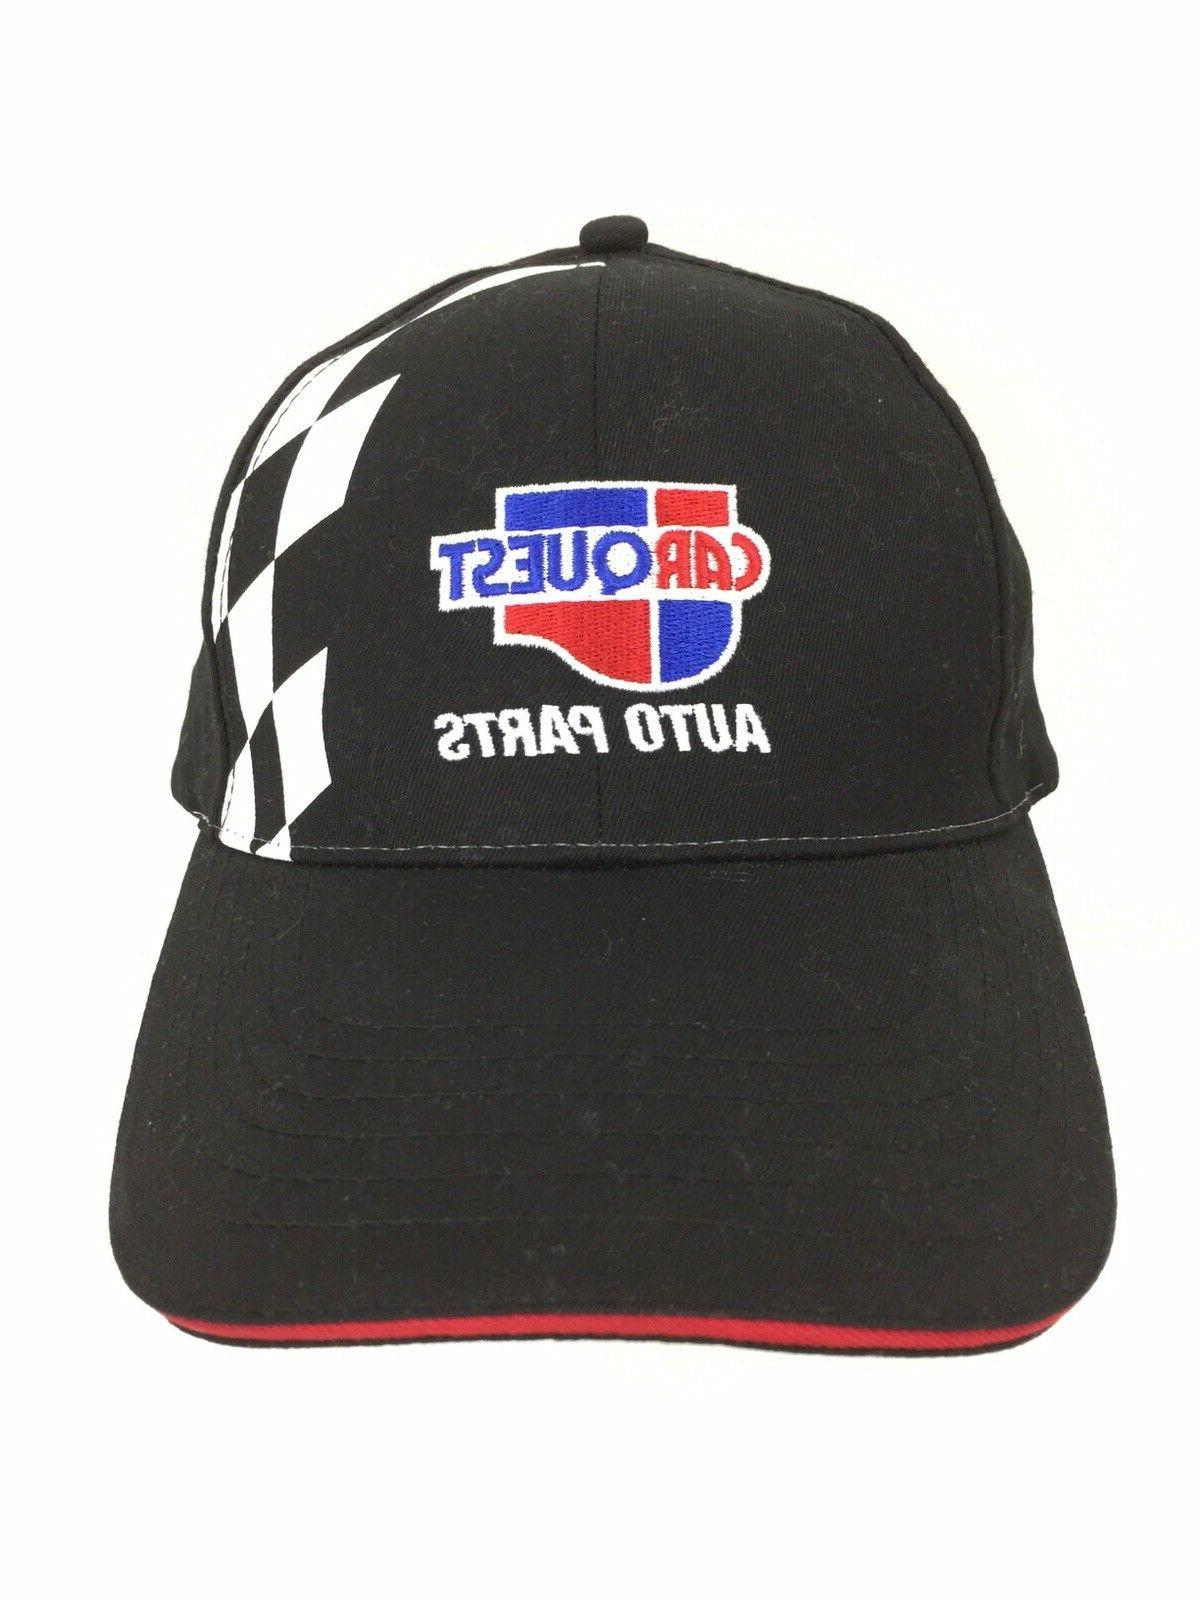 Carquest Auto Flag Over Hat Nascar Trucker